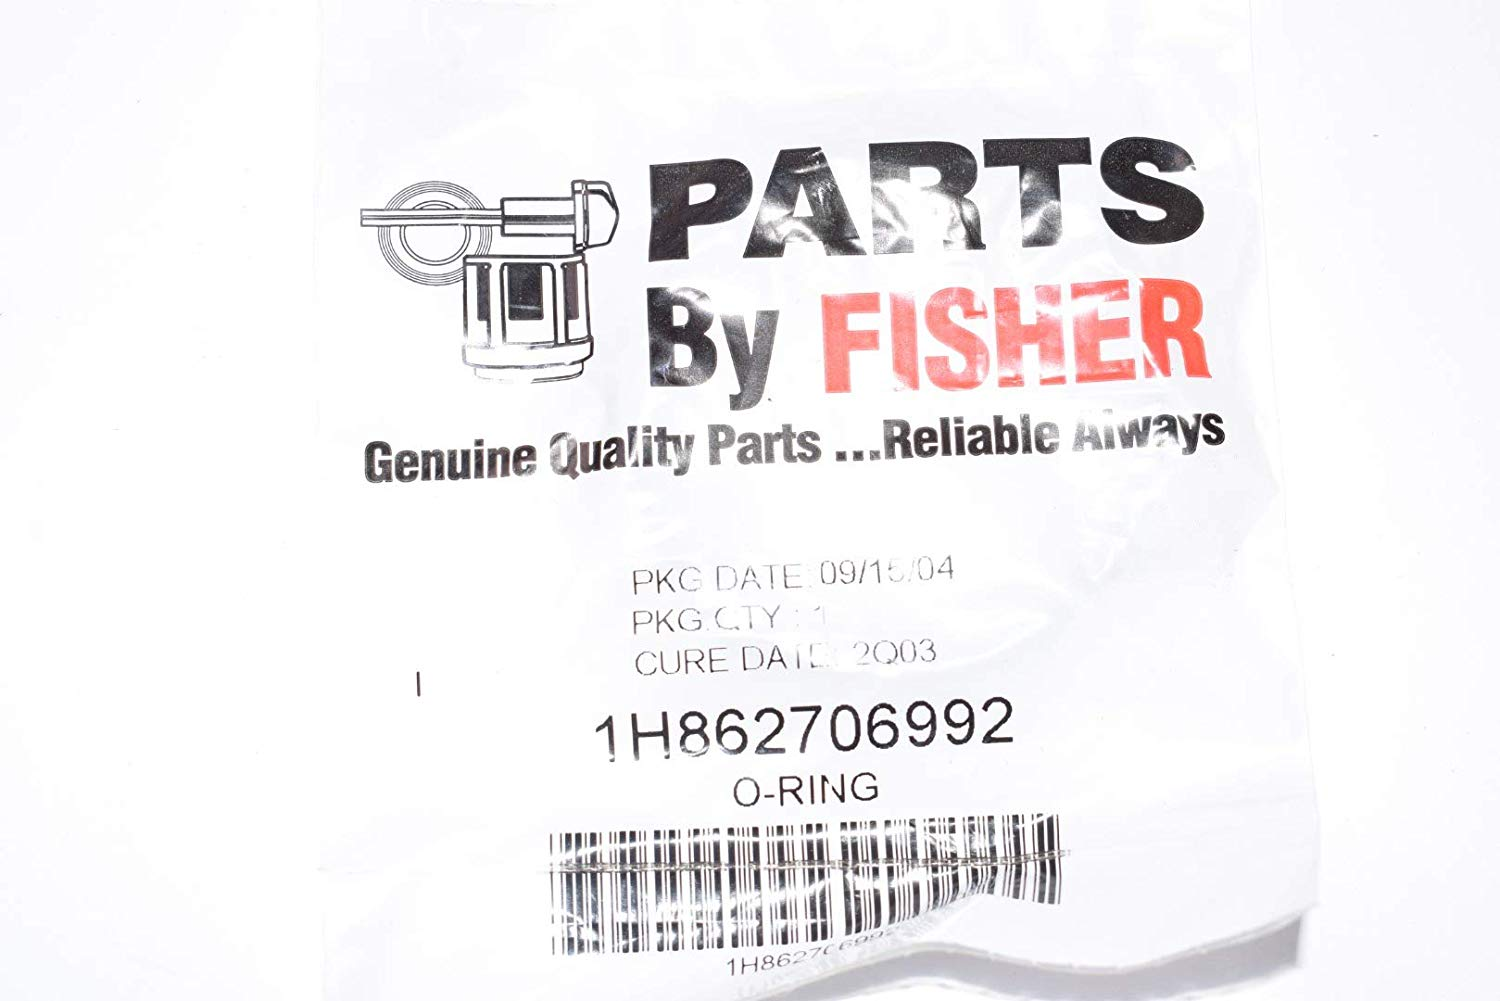 Fisher Parts By Emerson Oring